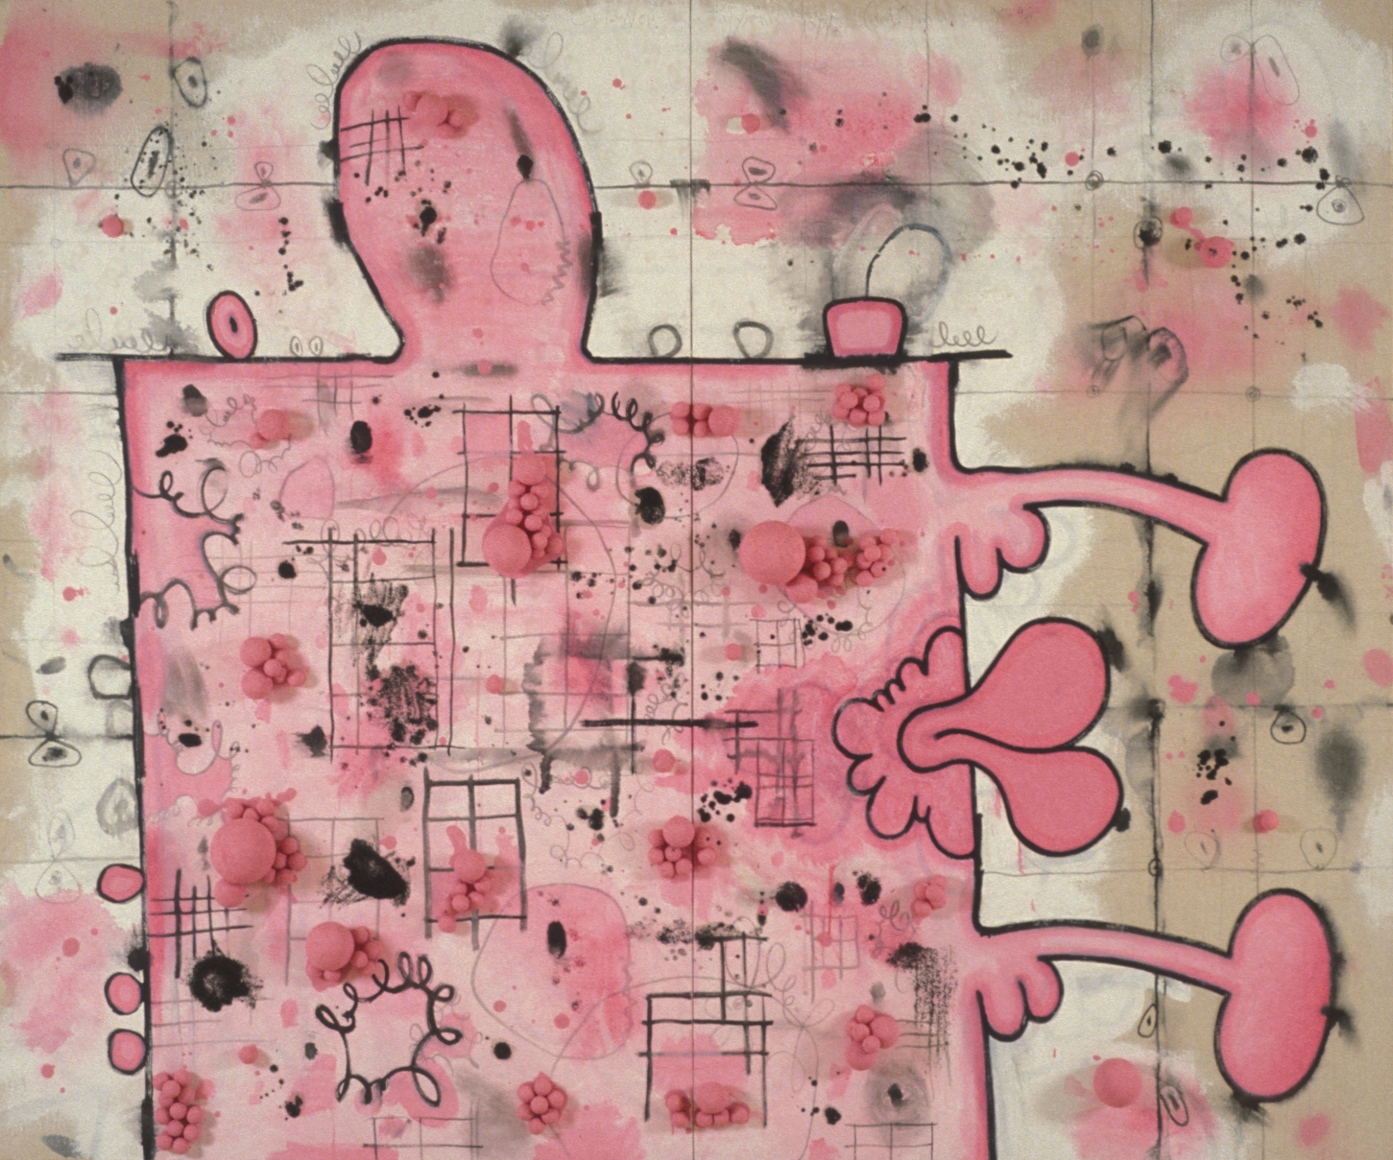 CARROLL DUNHAM, Pink Box with Two Extensions, 1995-96